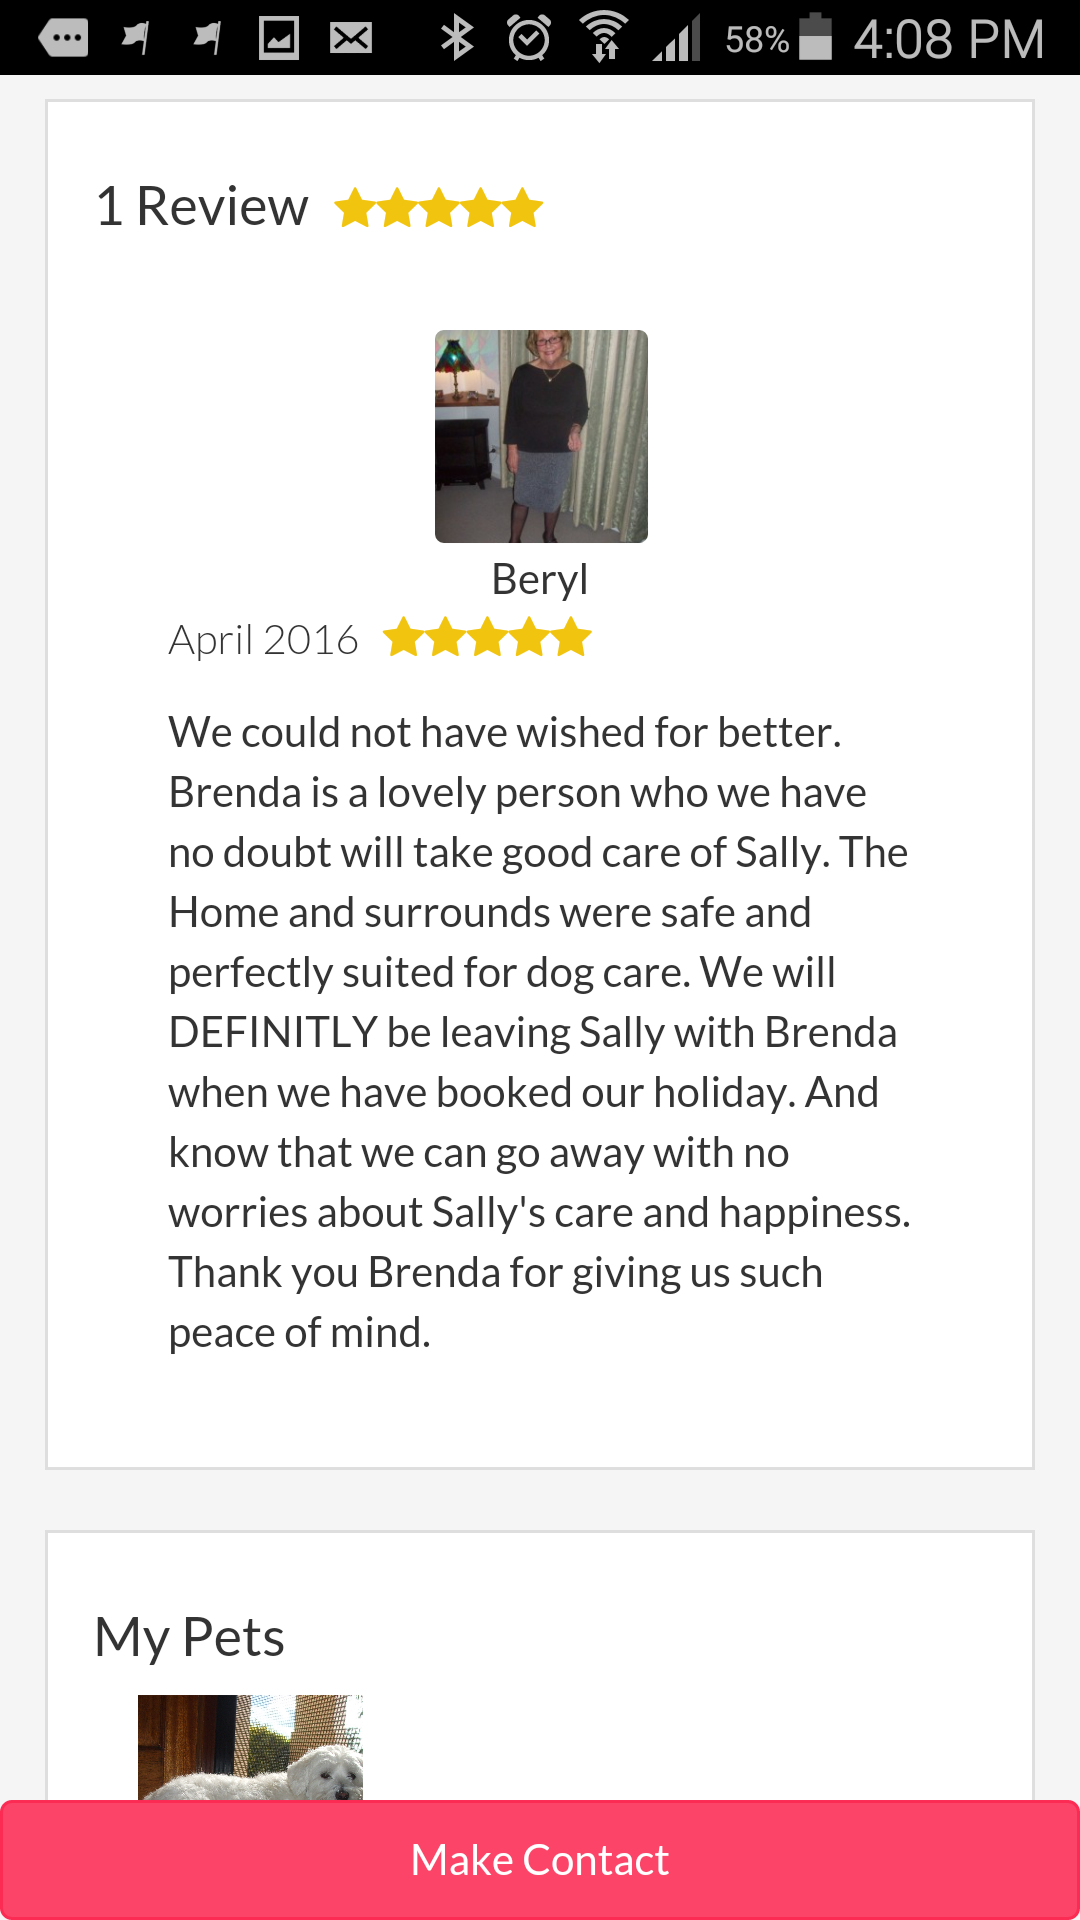 Another way that Brenda increased trust on her Pet Sitter